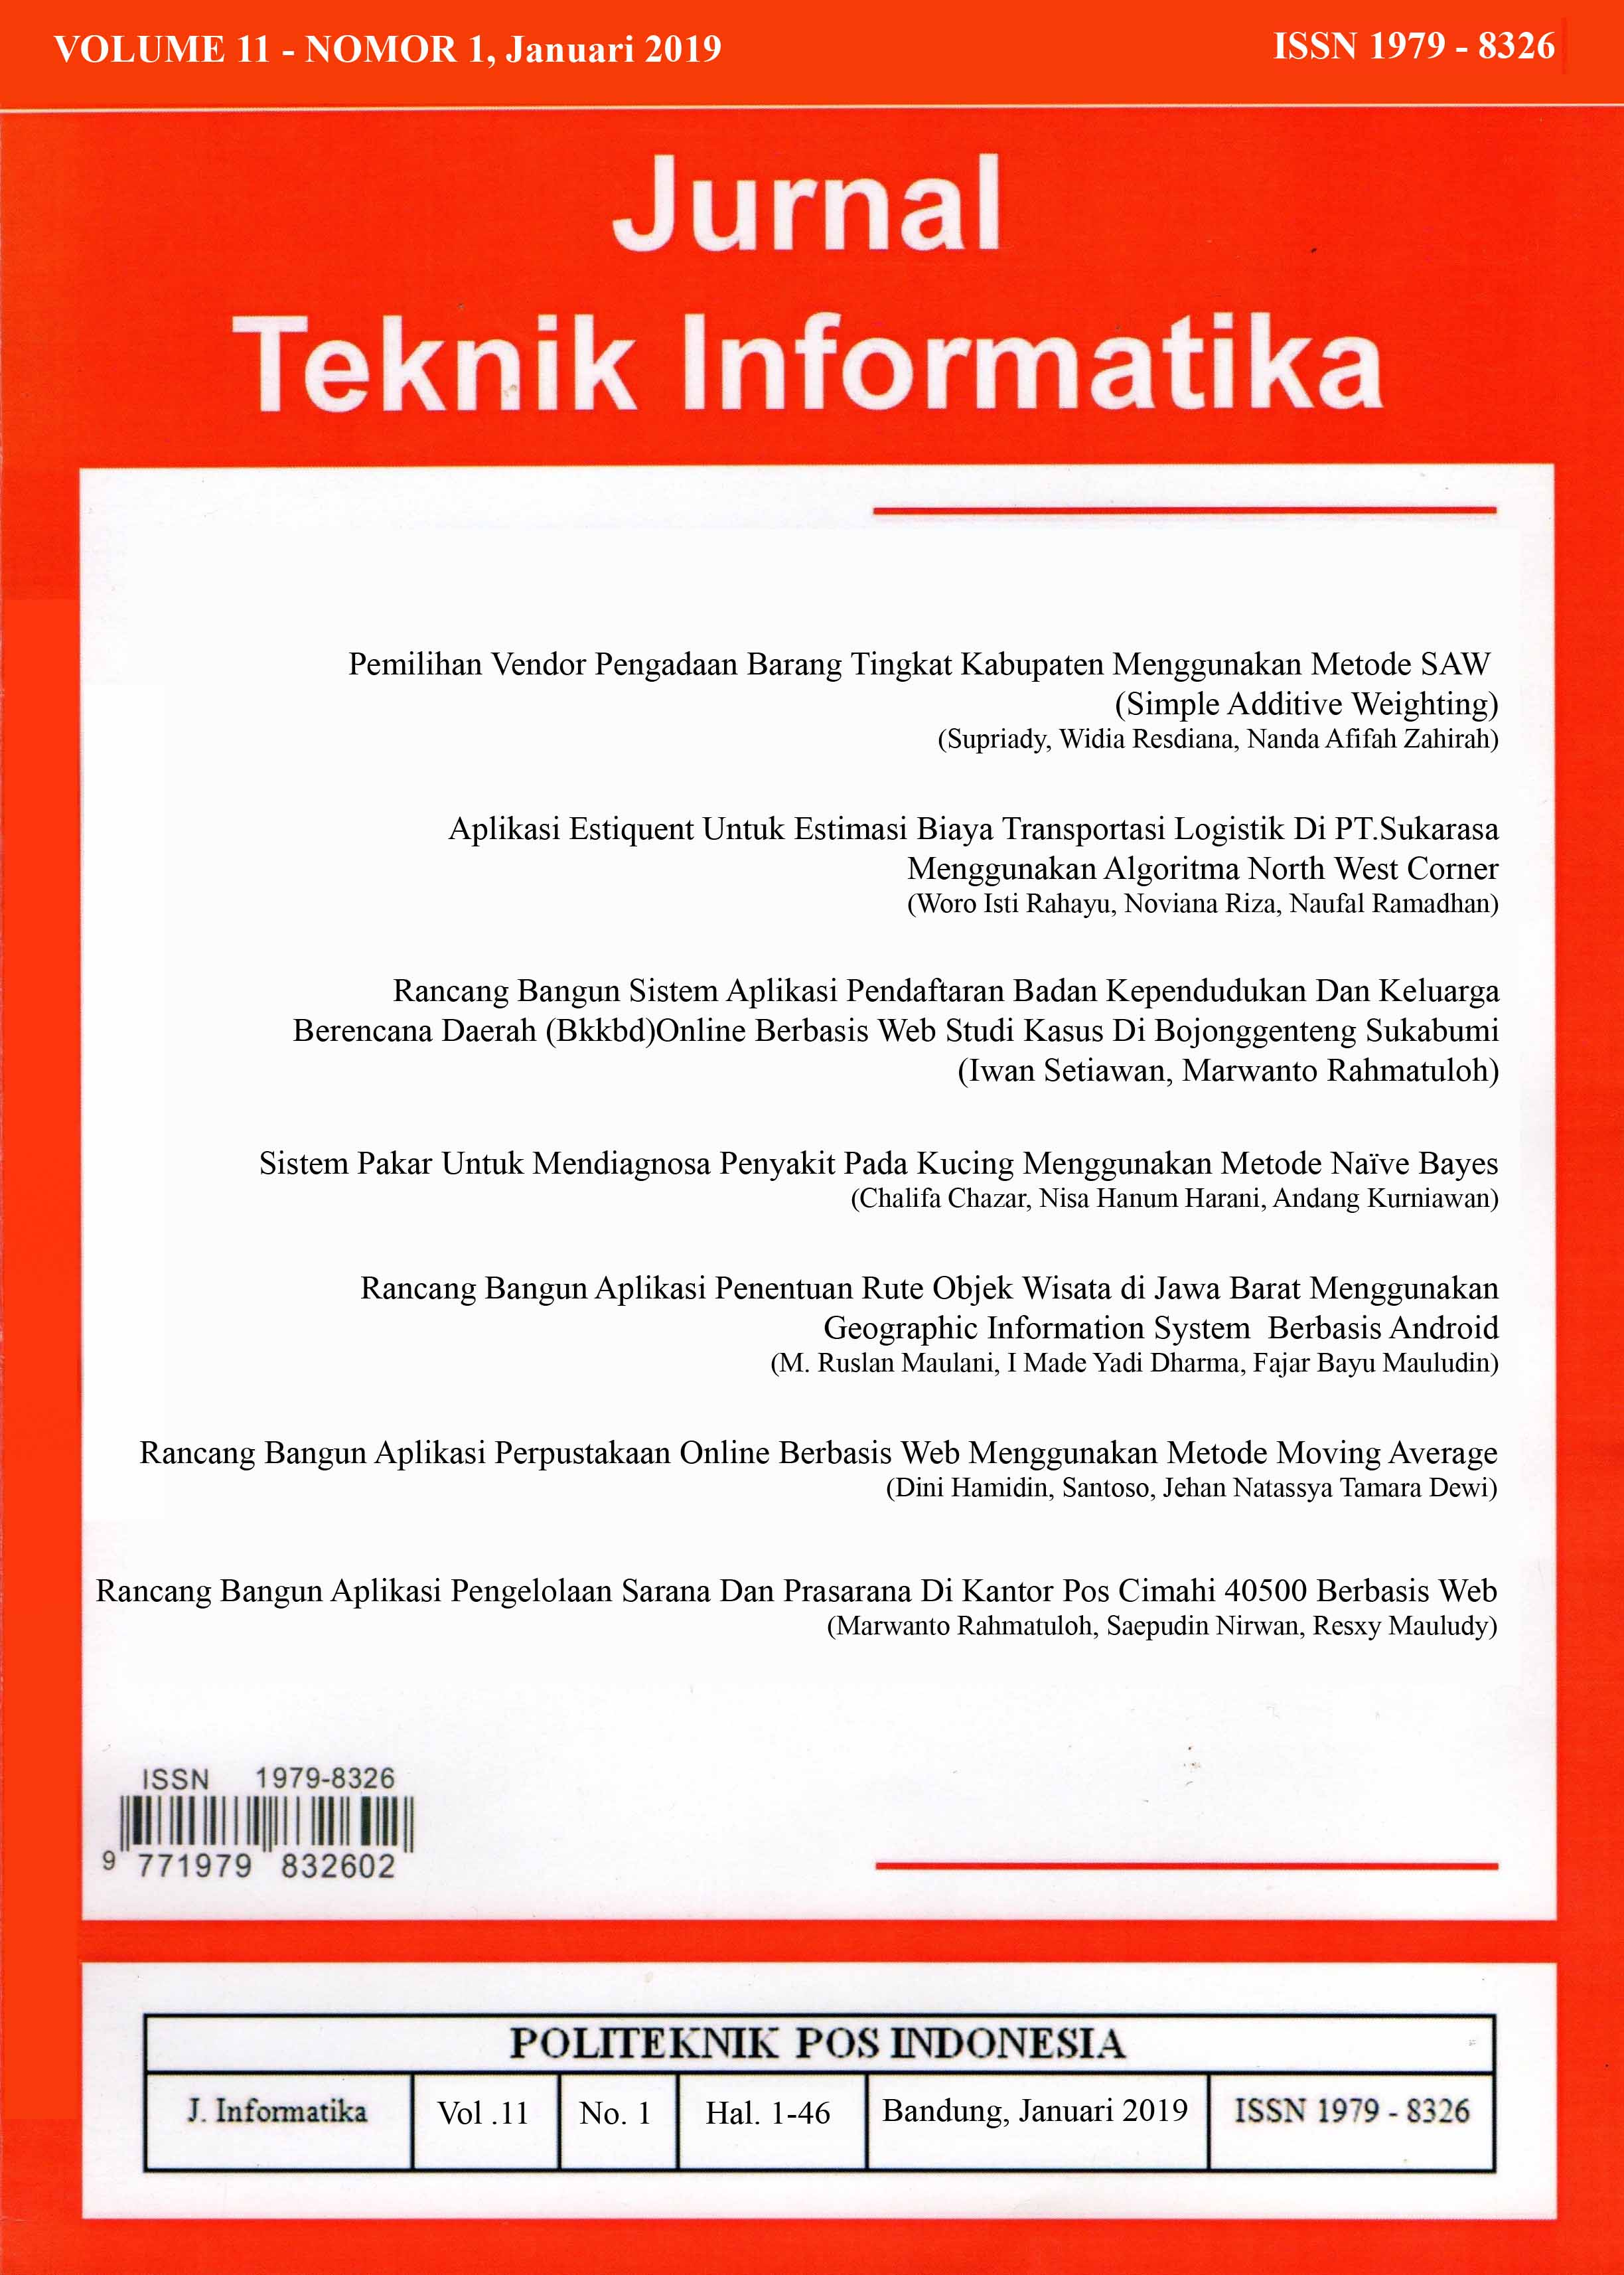 View Vol. 10 No. 1 (2018): Jurnal Teknik Informatika Volume 10 - Nomor 1, Januari 2018